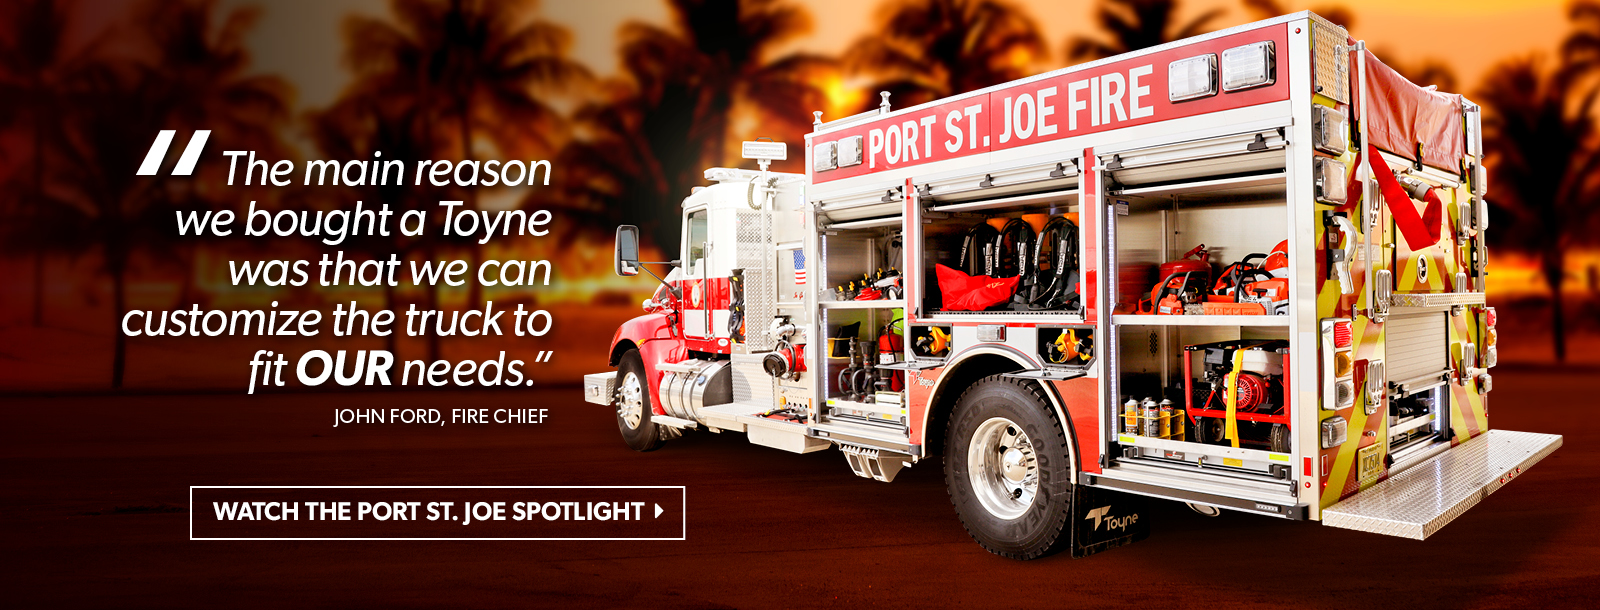 Hear the testimonial from the Port St. Joe, FL Fire Department.